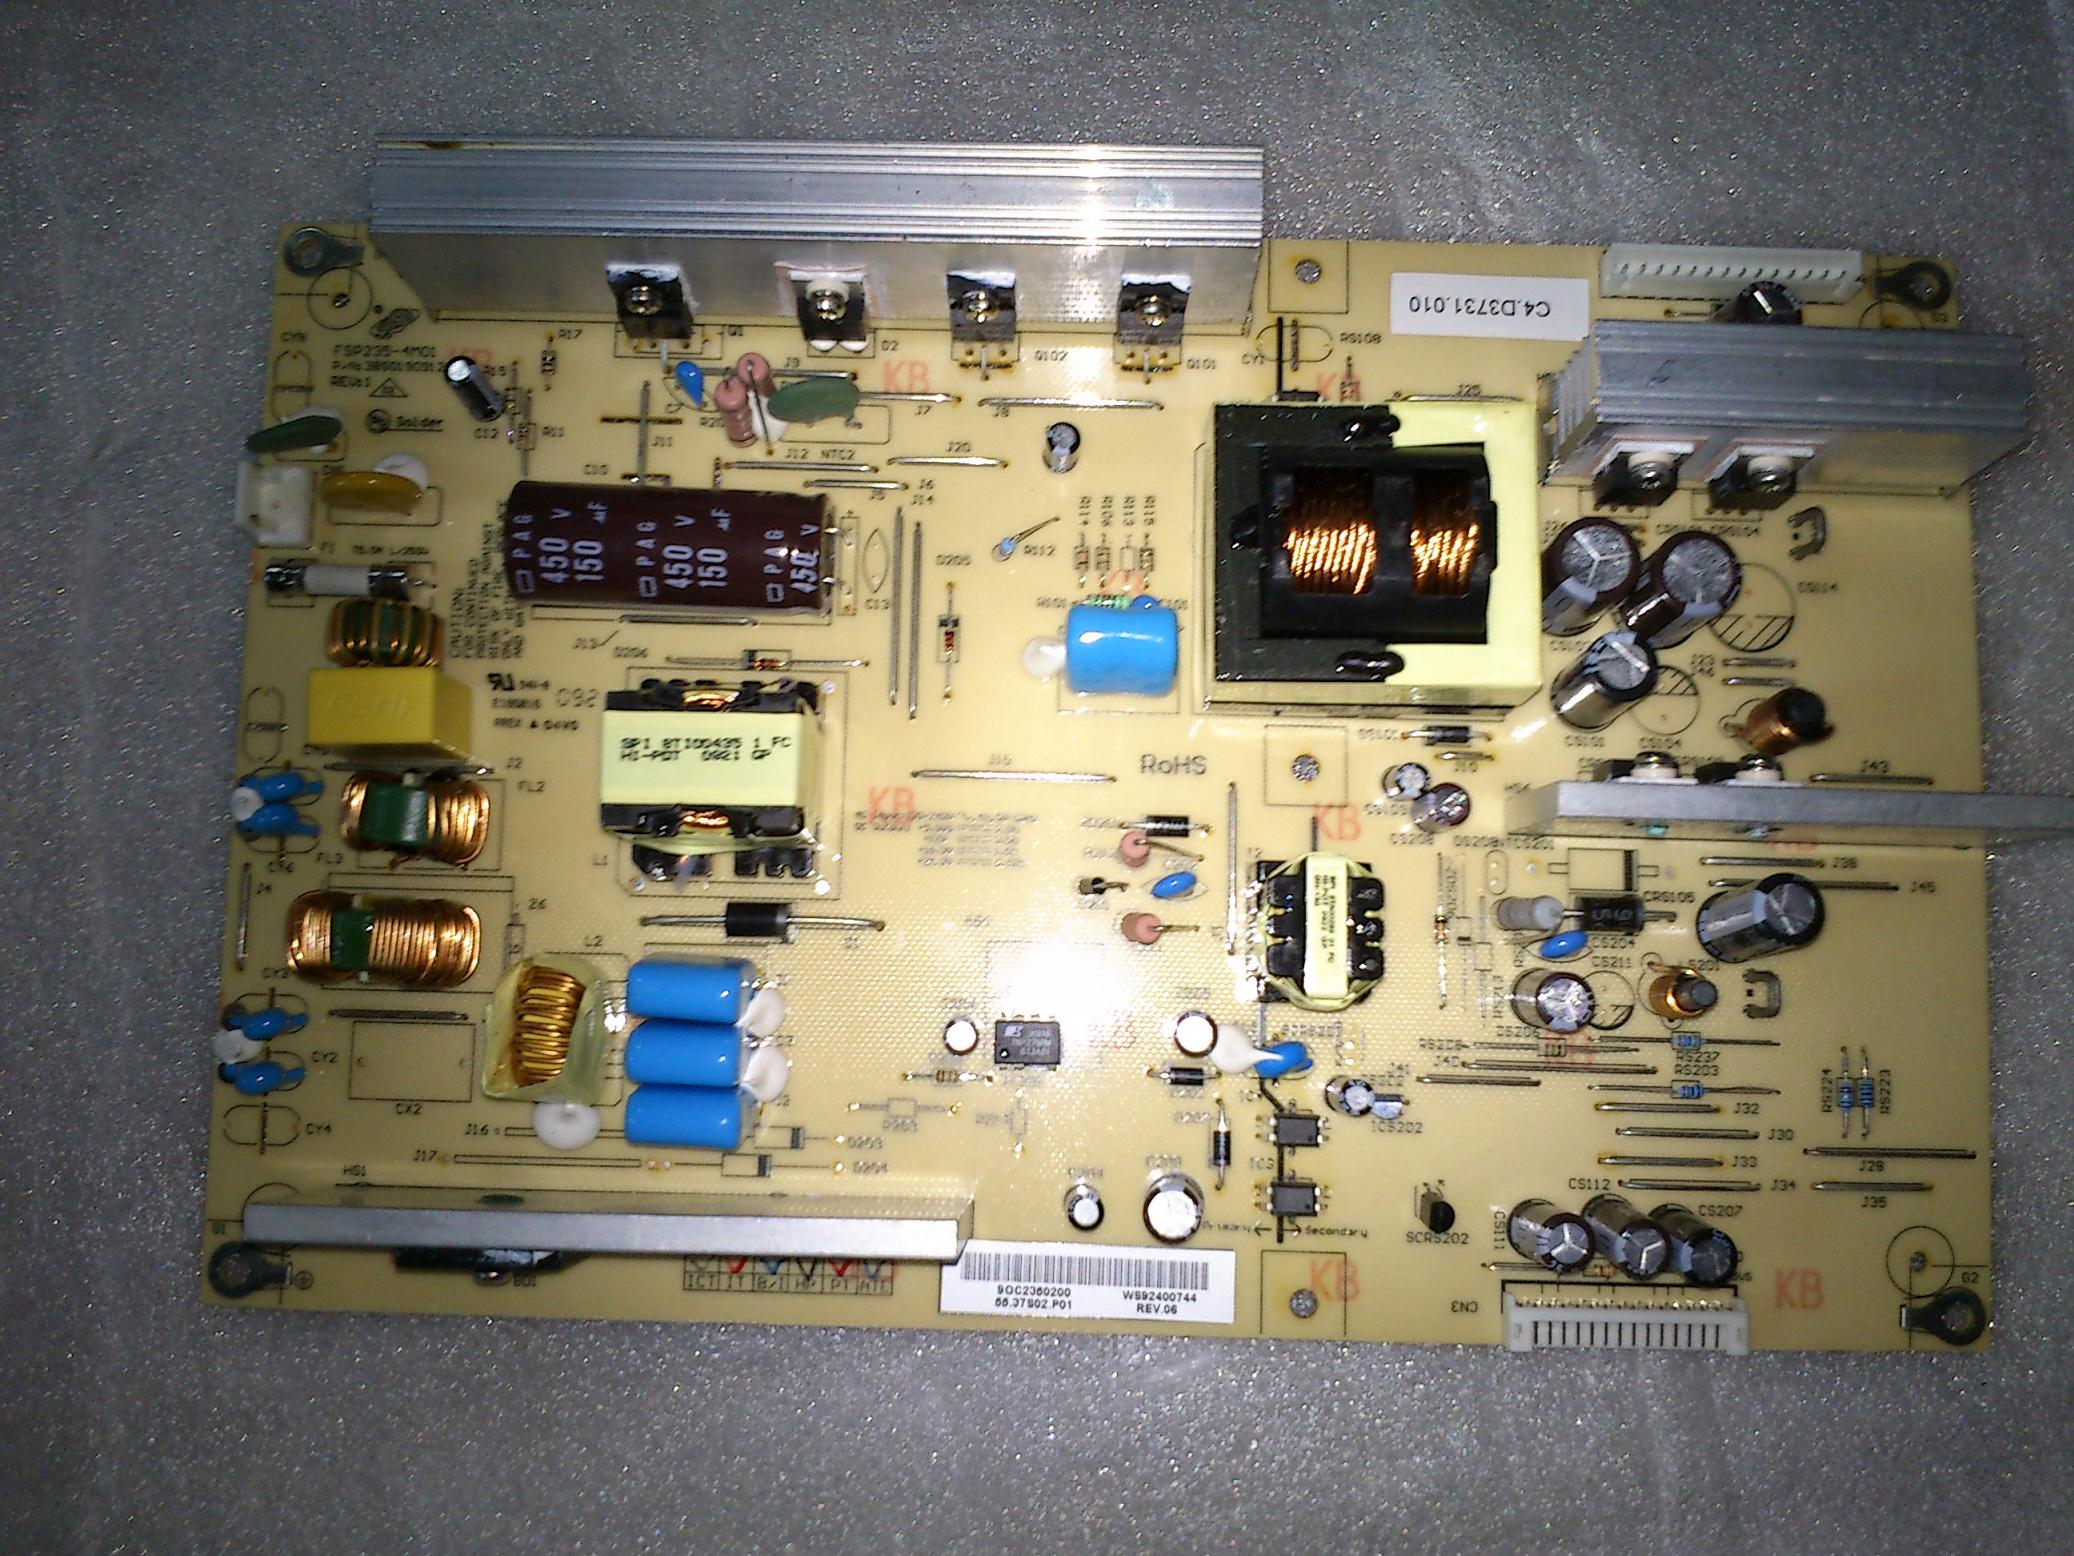 3BS0190912GP FSP235-4M01 REV:1 power supply board